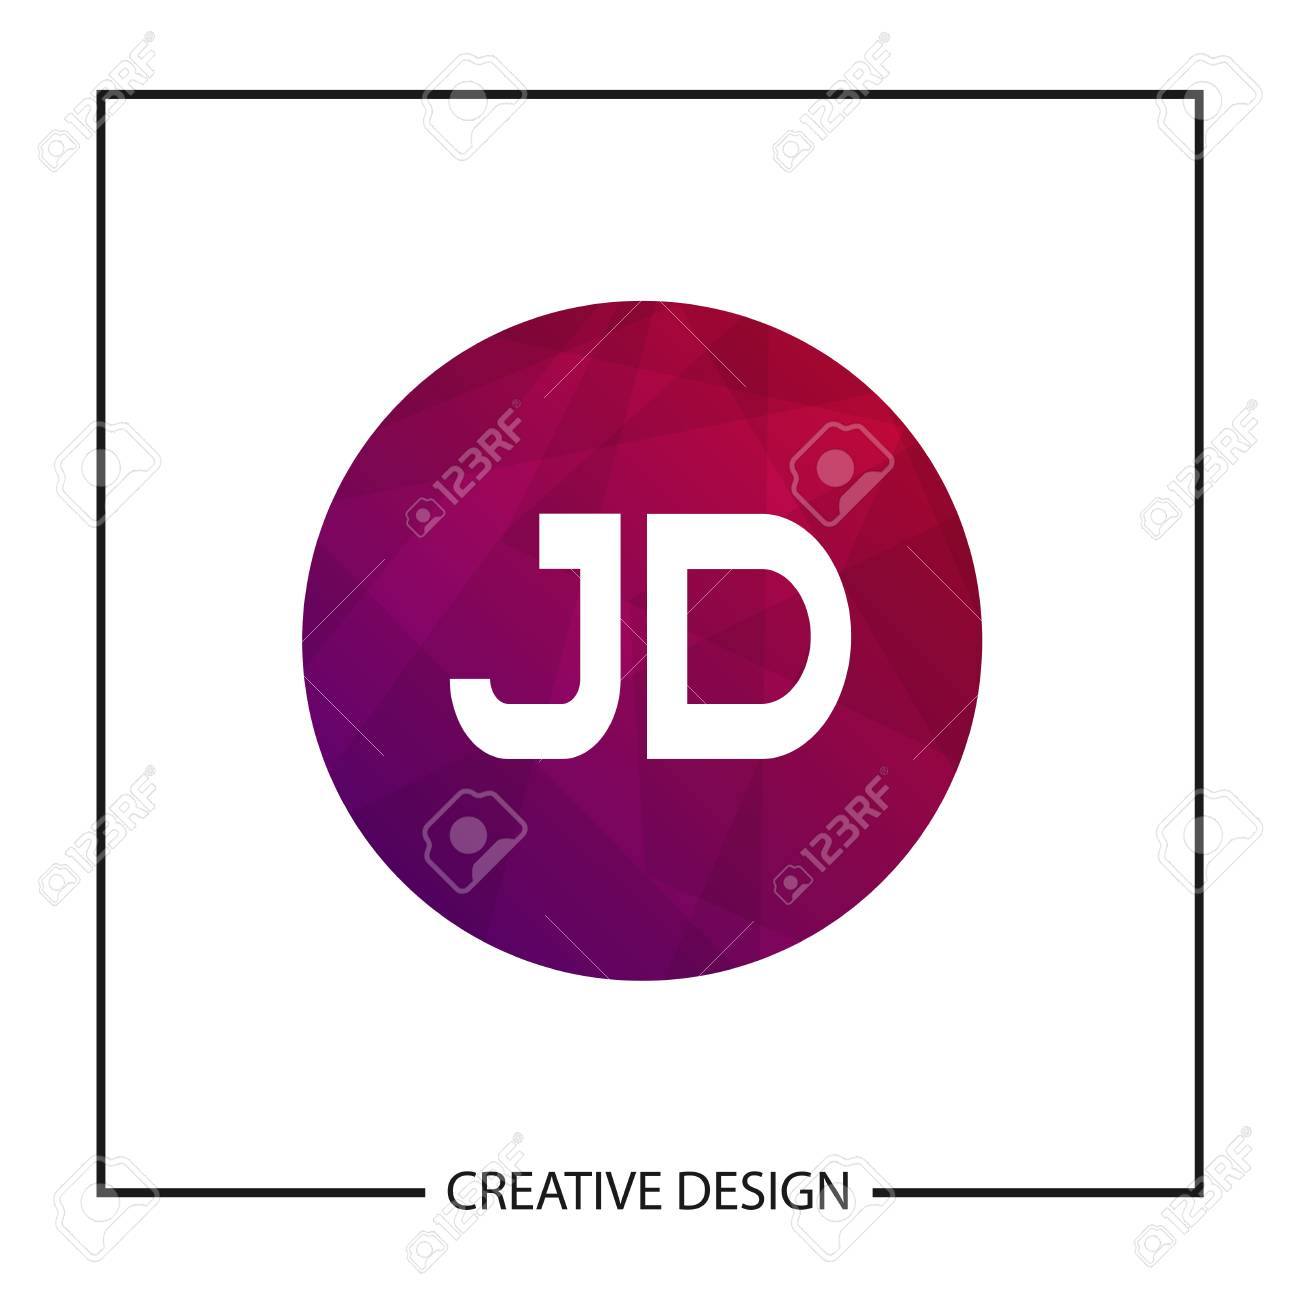 initial letter jd logo template design royalty free cliparts vectors and stock illustration image 112710749 initial letter jd logo template design